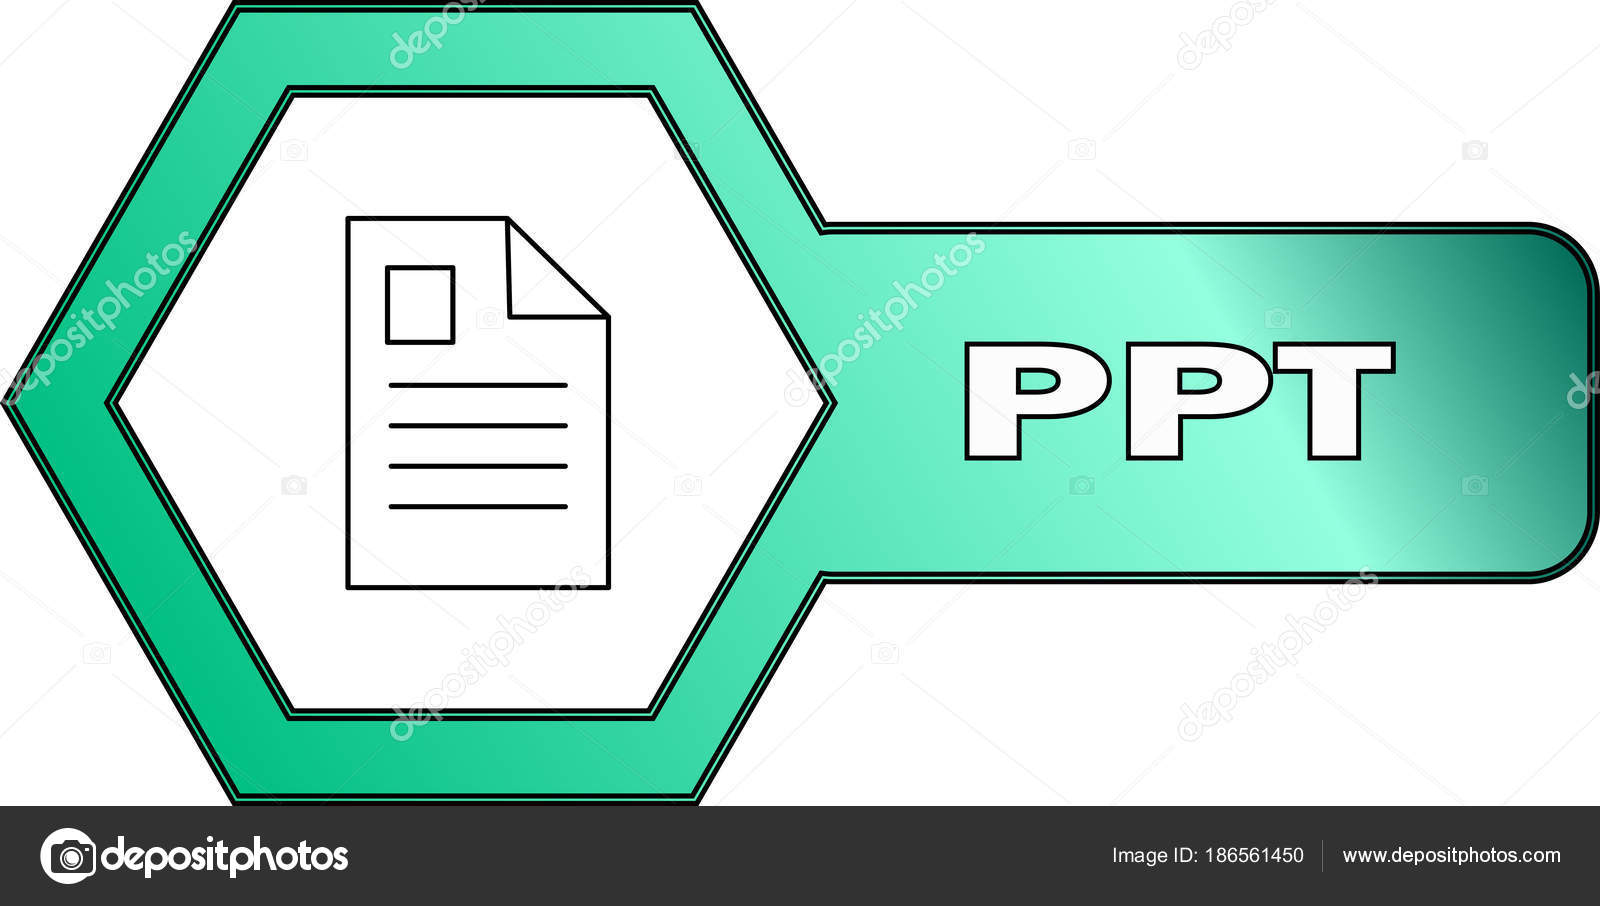 Cone para arquivos ppt power point tendo hexagonal forma vector cone para arquivos ppt power point tendo hexagonal forma vector vetores de stock ccuart Image collections